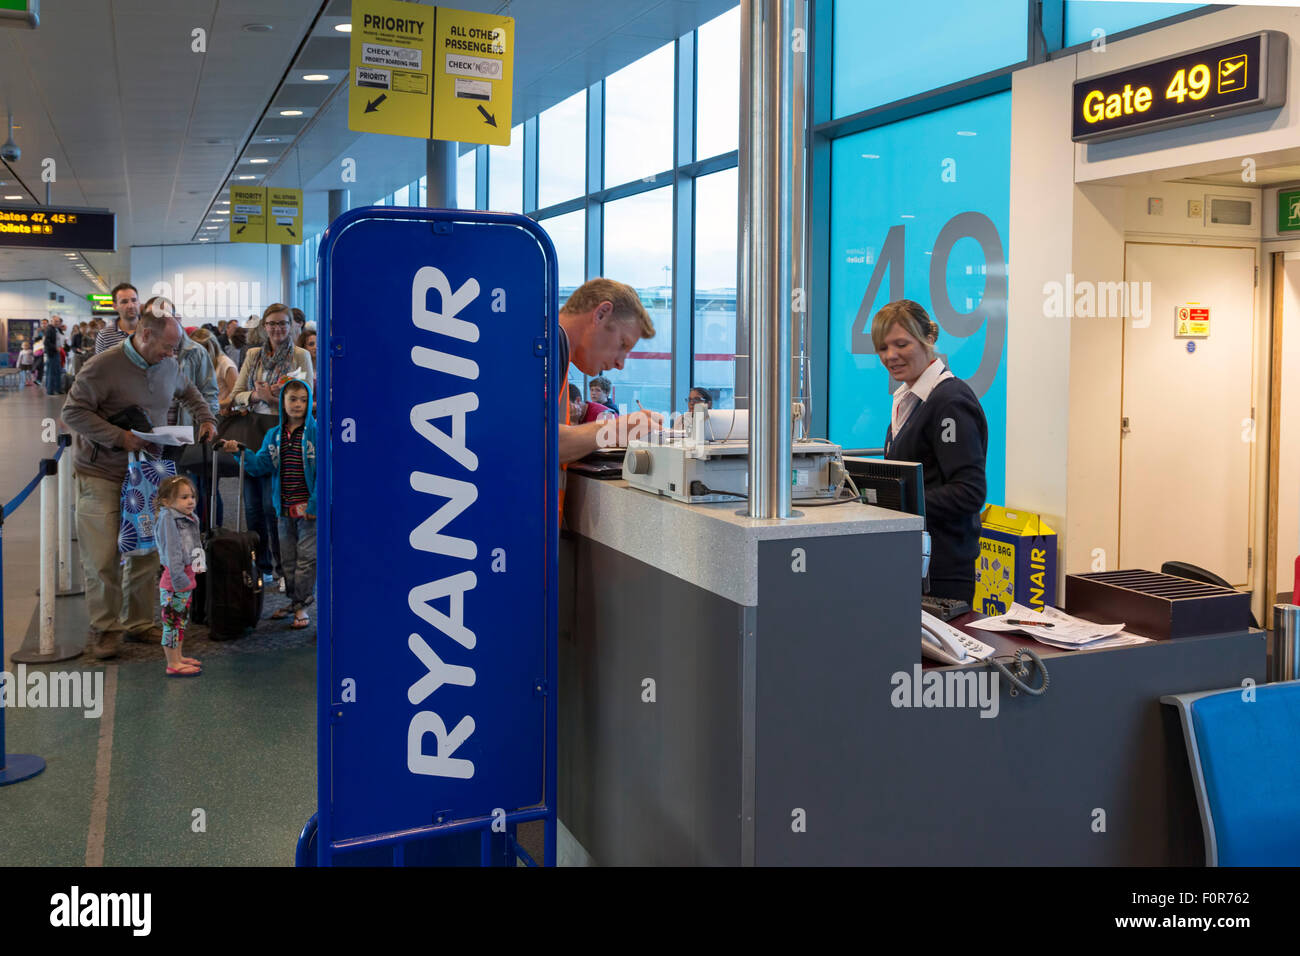 Ryanair check-in area, Stansted airport, London, United Kingdom - Stock Image